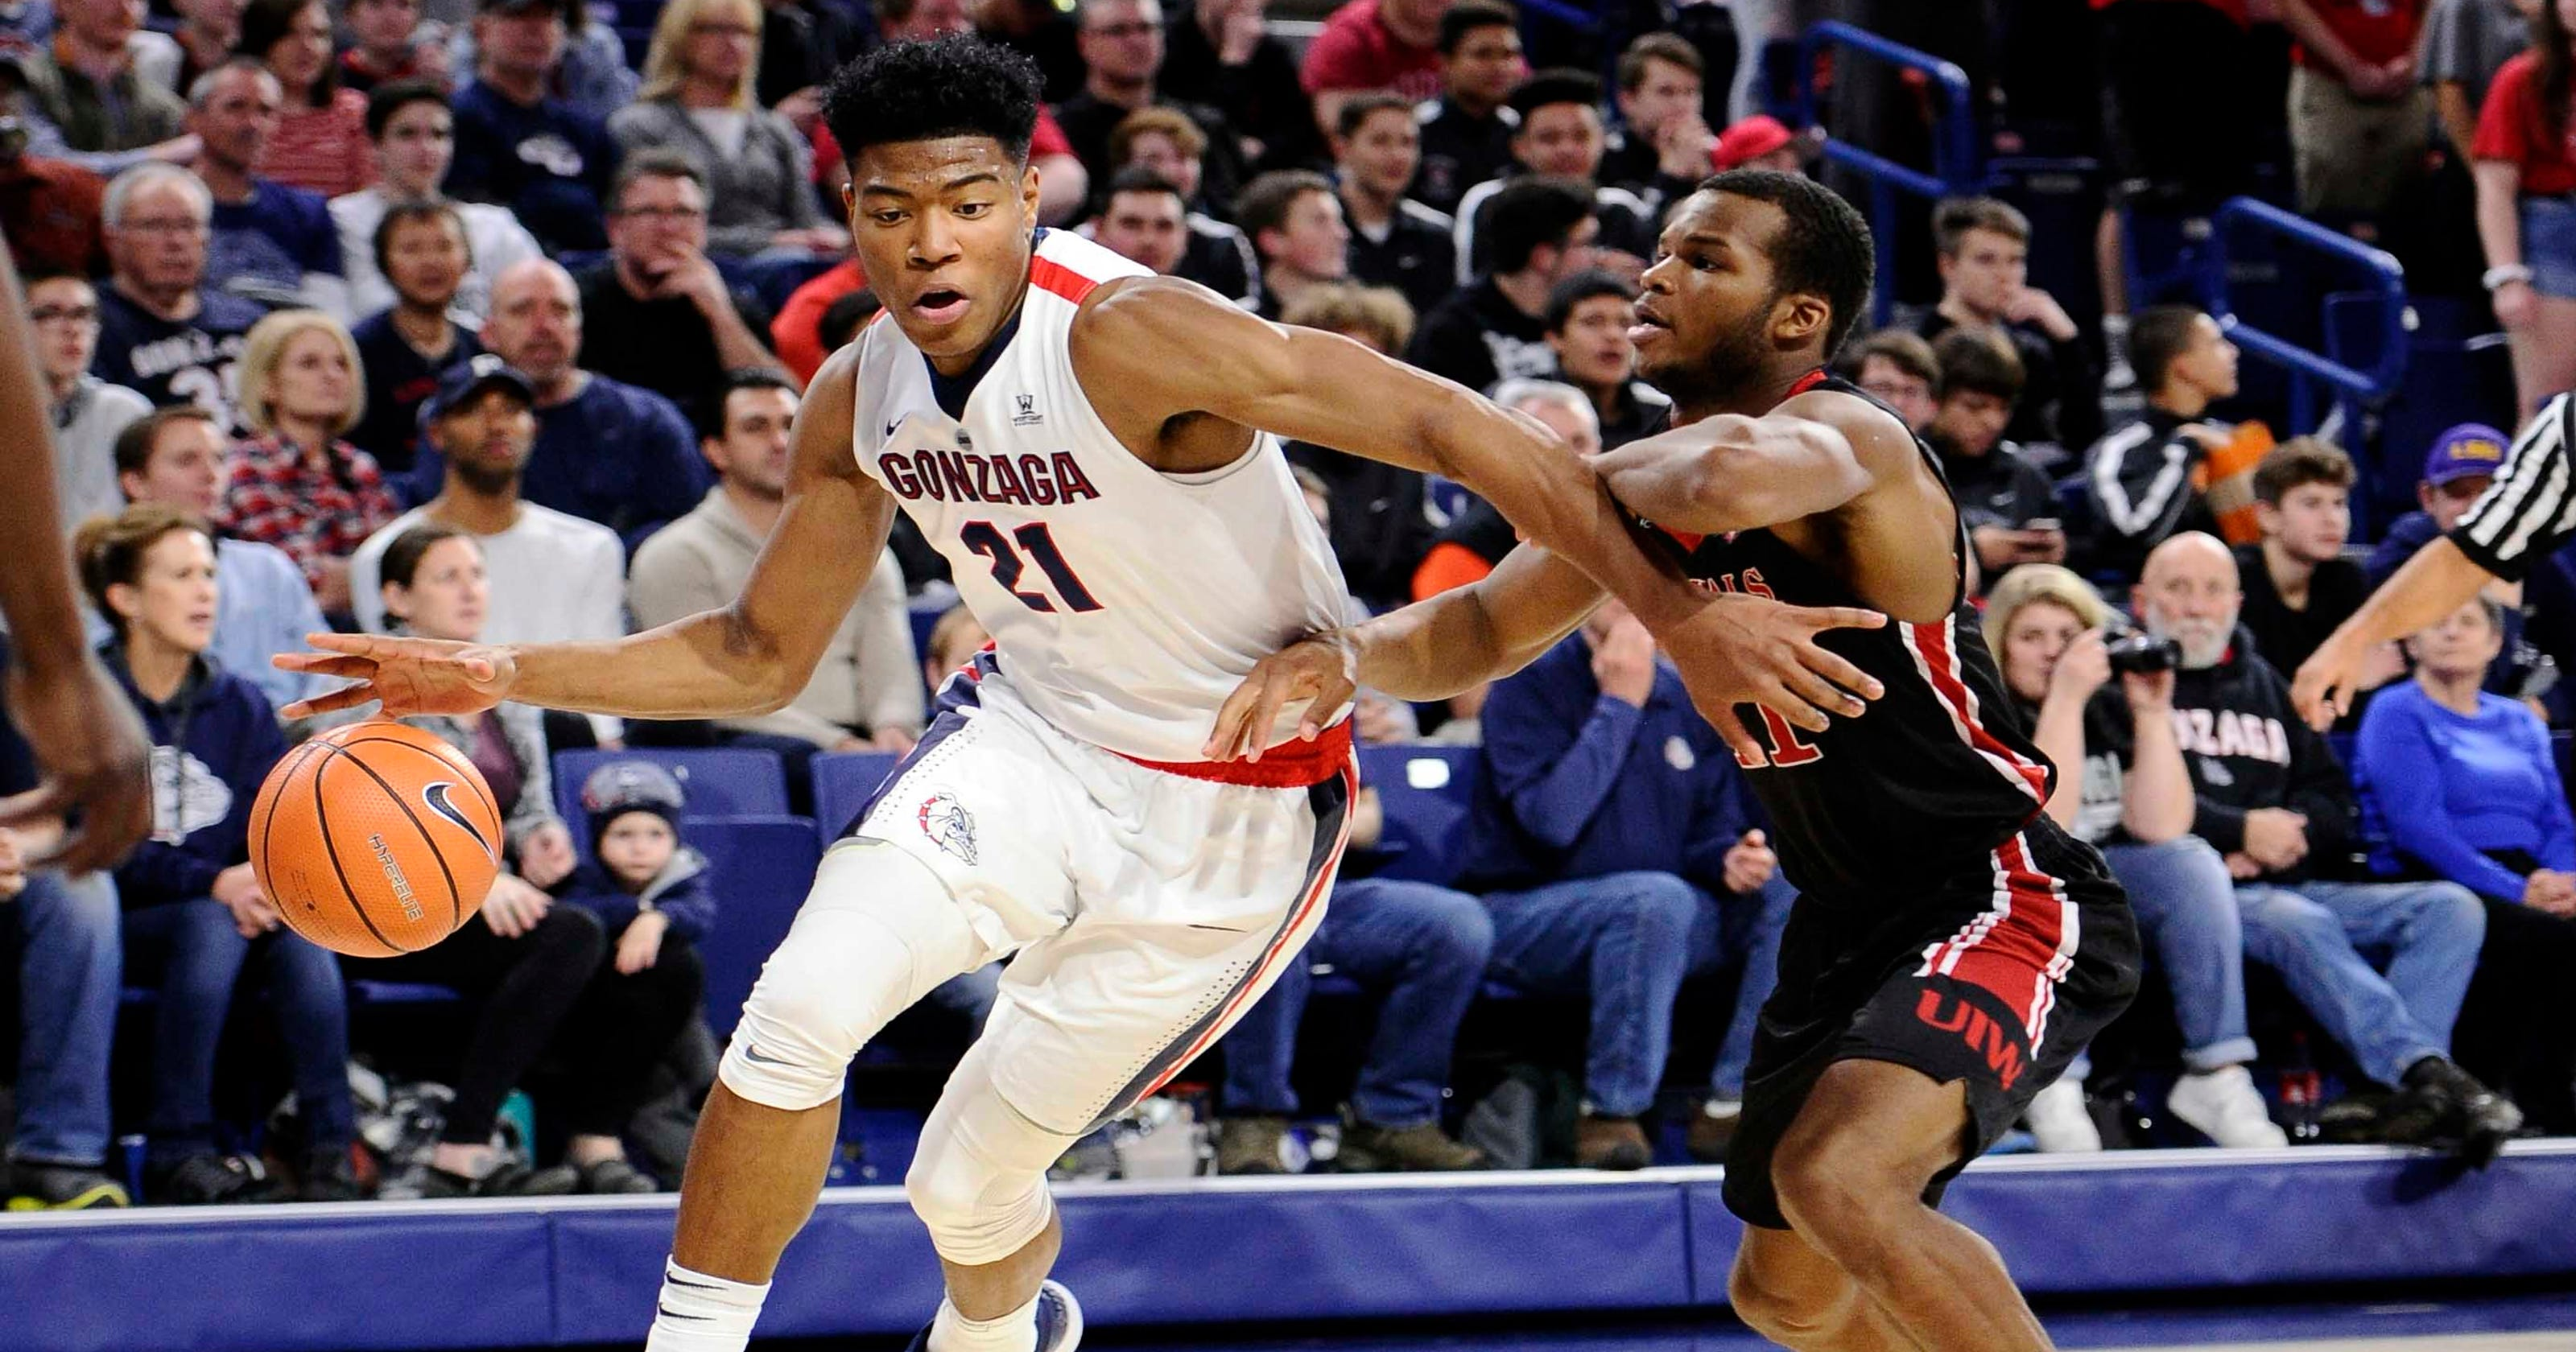 Gonzaga again thriving in college basketball with ...Gonzaga Basketball